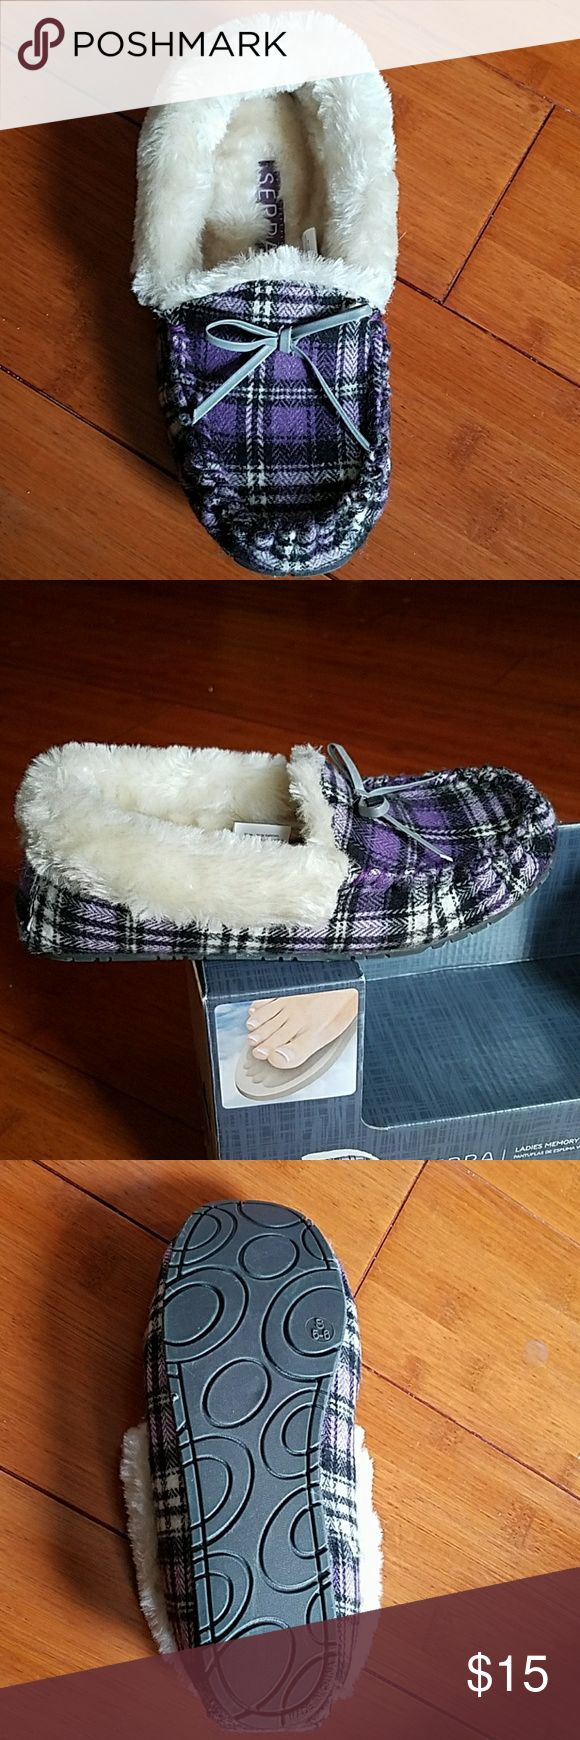 NIB-SERRA MOCCASIN SLIPPERS PURPLE/BLK/WHT PLAID NEW IN THE BOX LADIES SERRA MOCCASIN MEMORY FOAM SLIPPERS. PURPLE/BLK/WHT PLAID.  SIZE SMALL-5/6 Serra Shoes Slippers